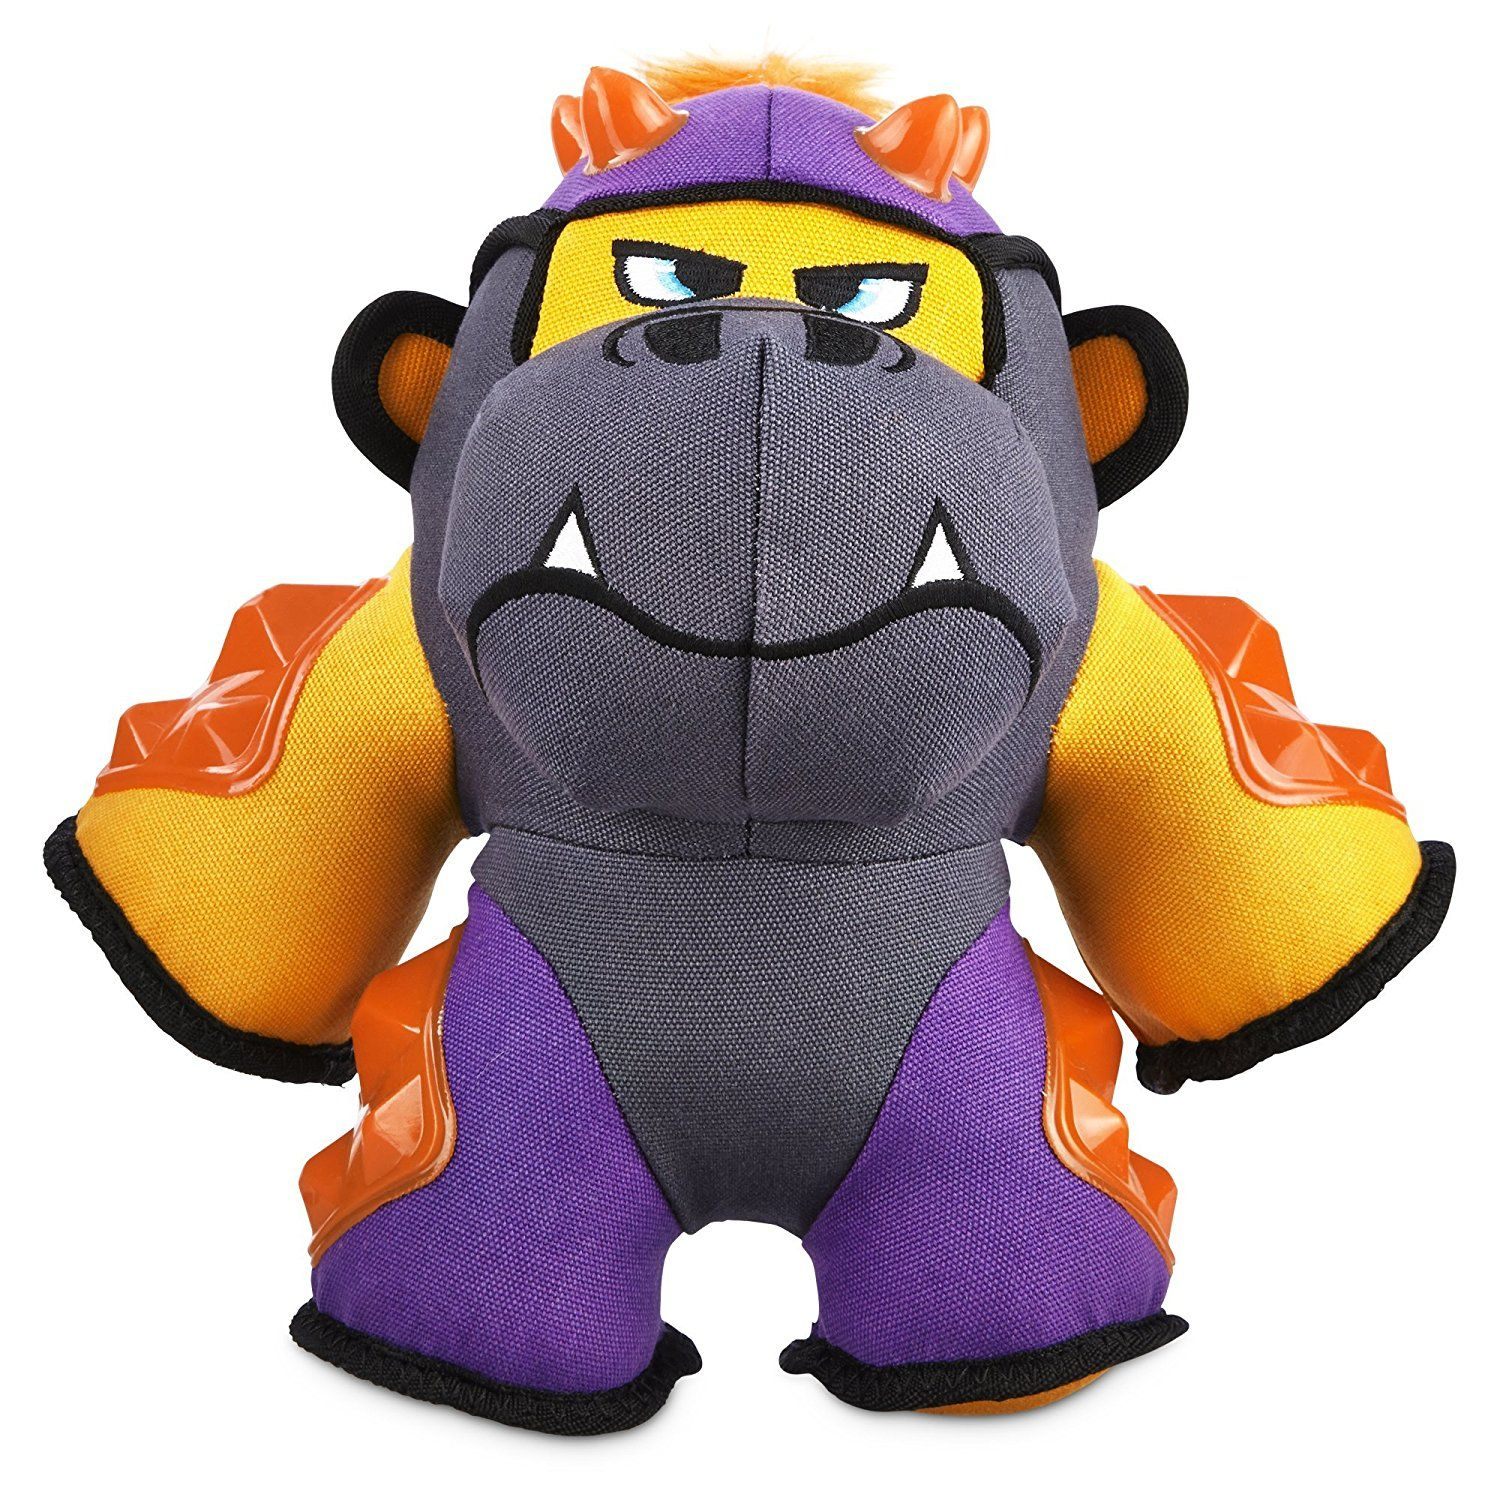 Leaps And Bounds Tough Plush Gorilla Dog Toy In Large You Can